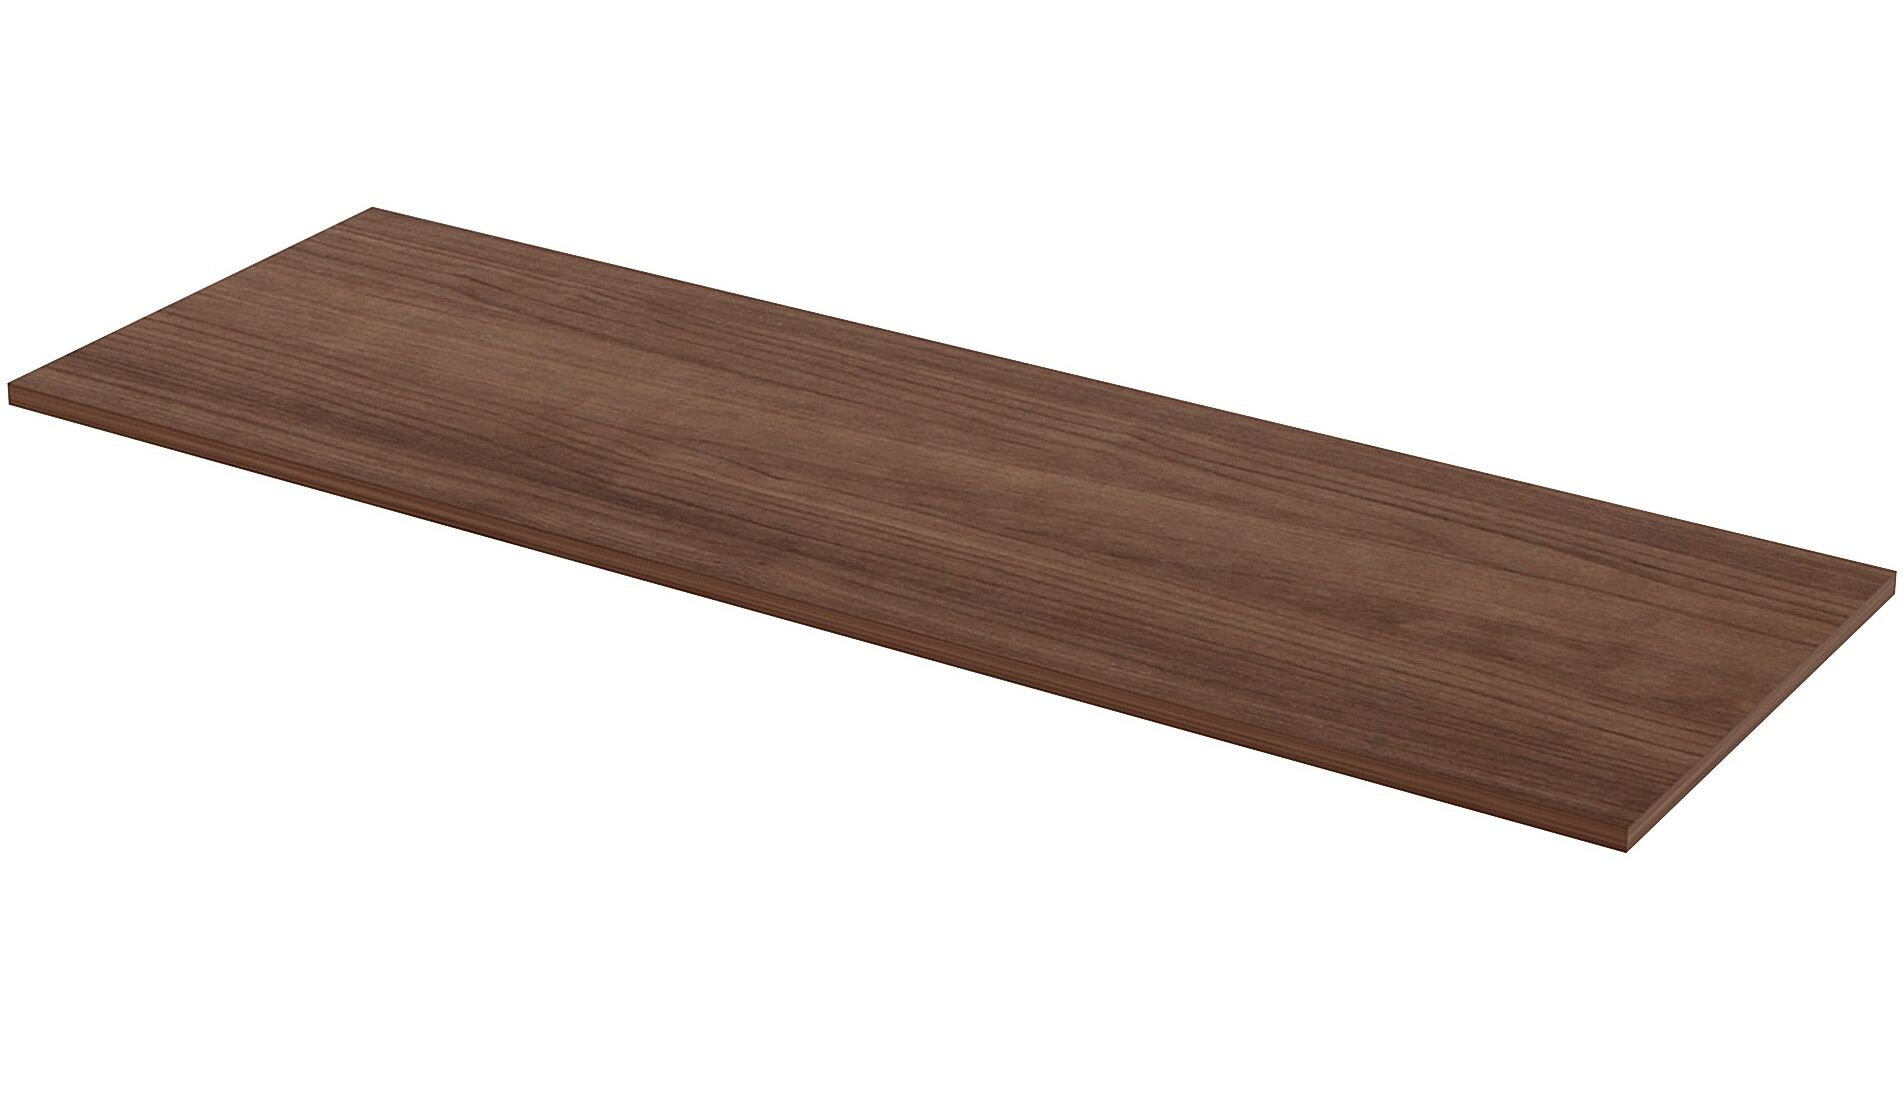 Utility Table Top Color: Walnut